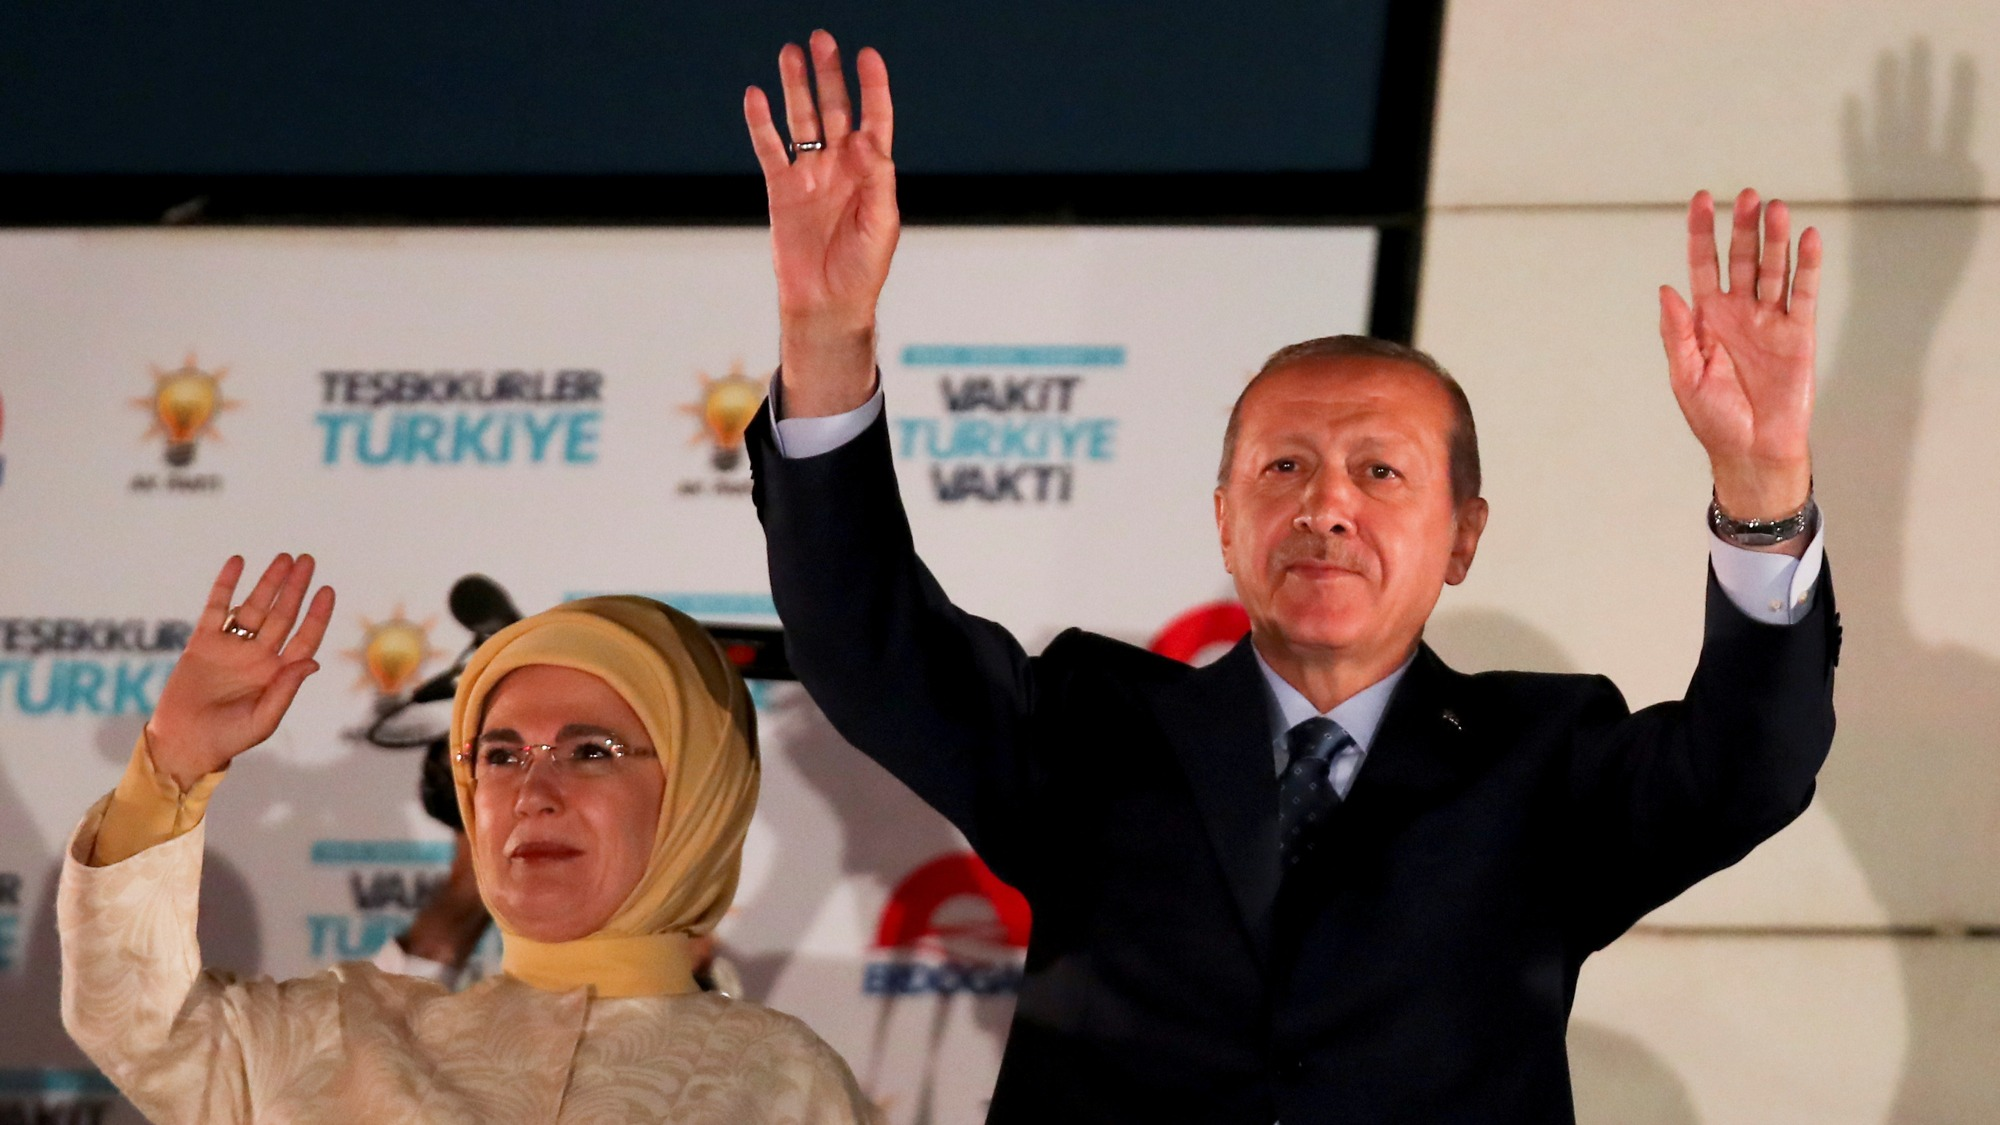 Turkish President Tayyip Erdoğan and his wife Emine Erdogan stand side-by-side with their arms up waving.